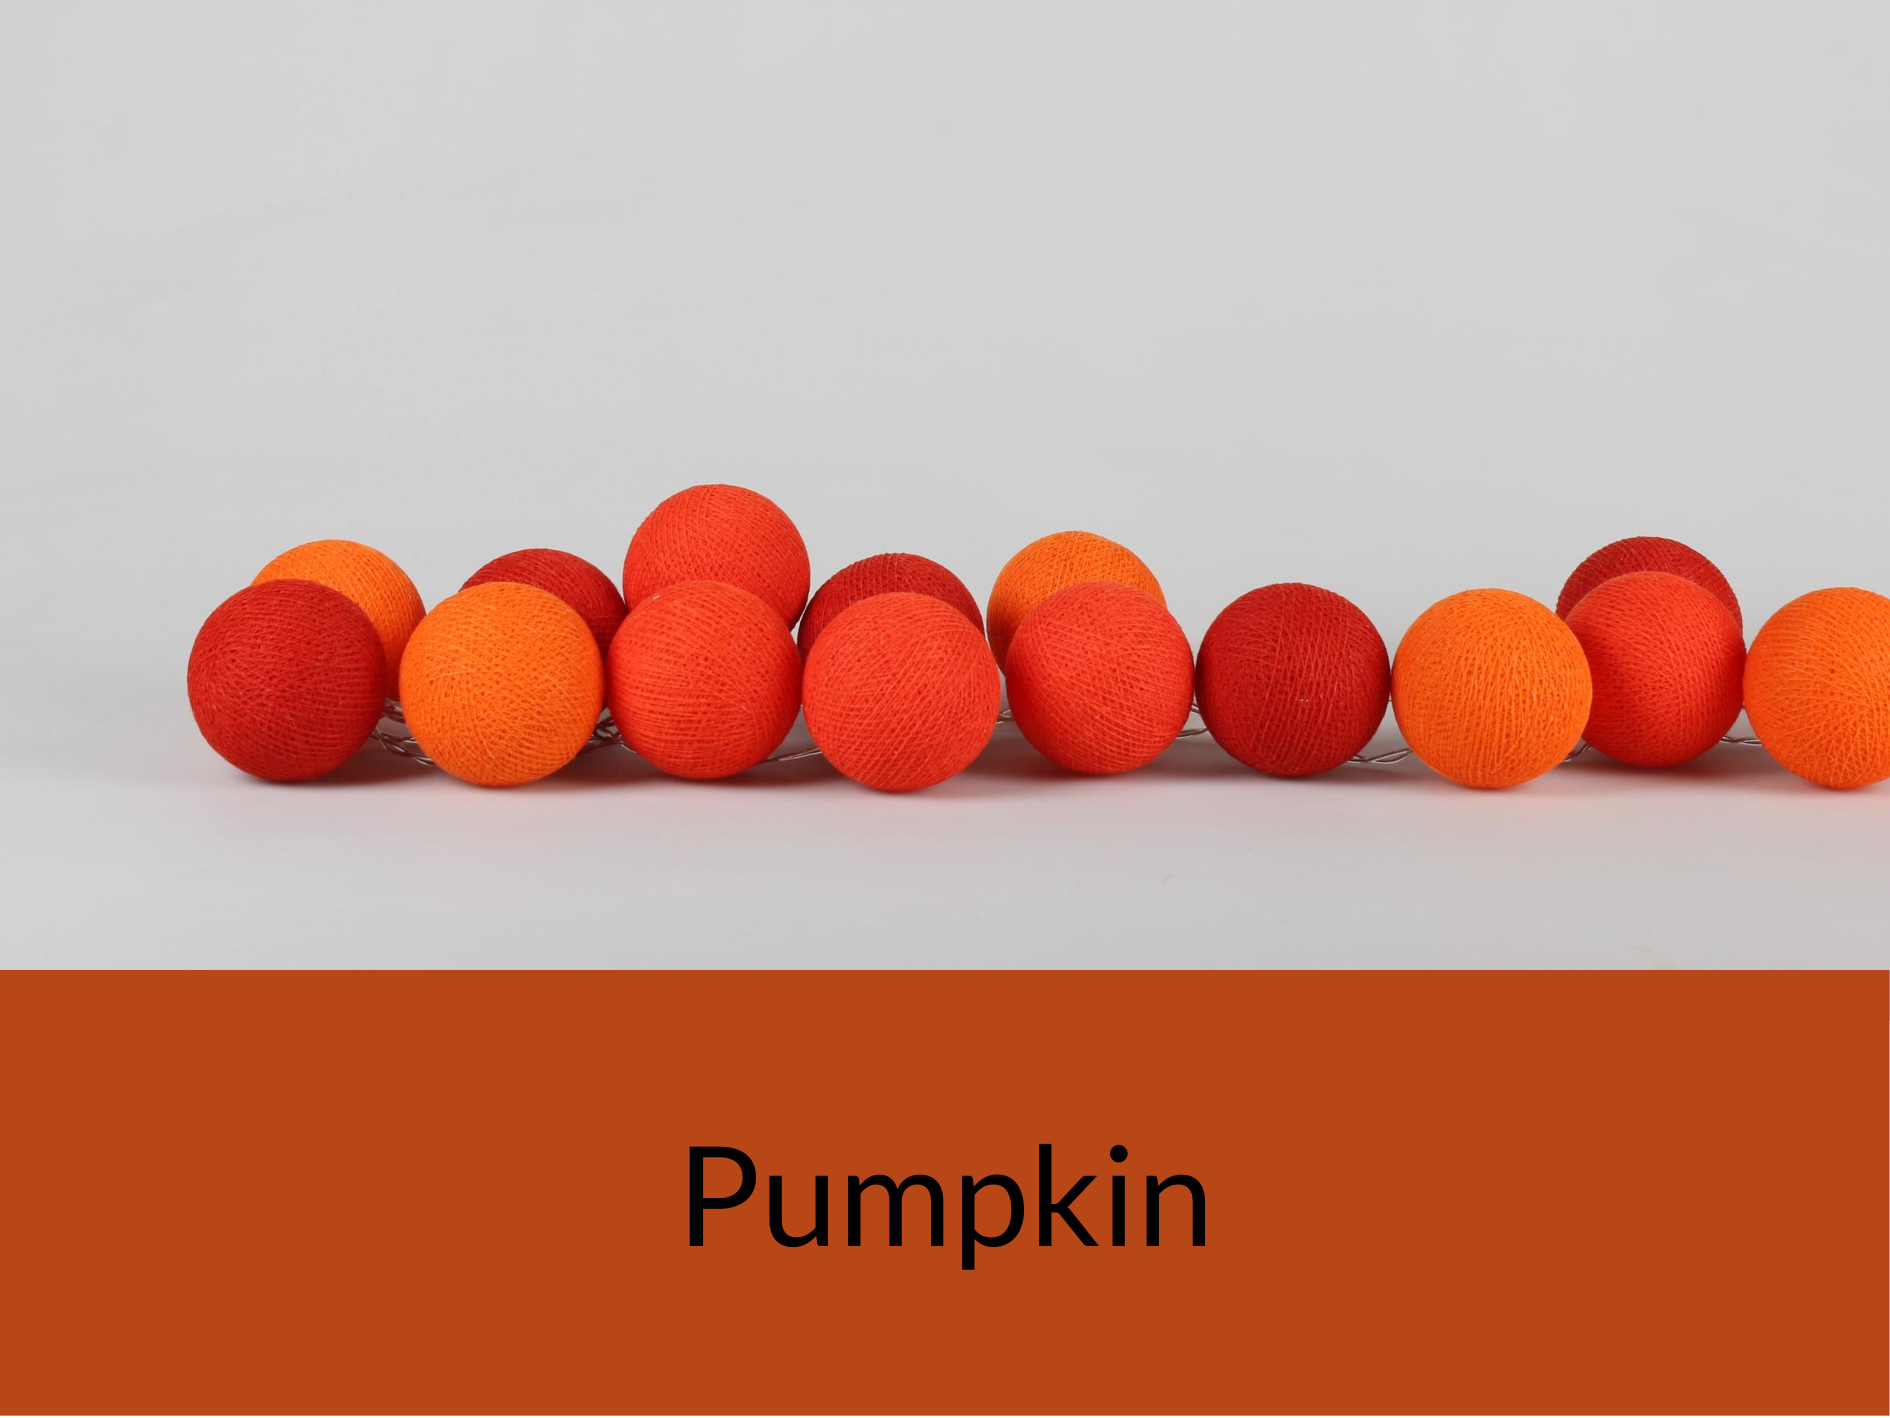 Pumpkin - LED